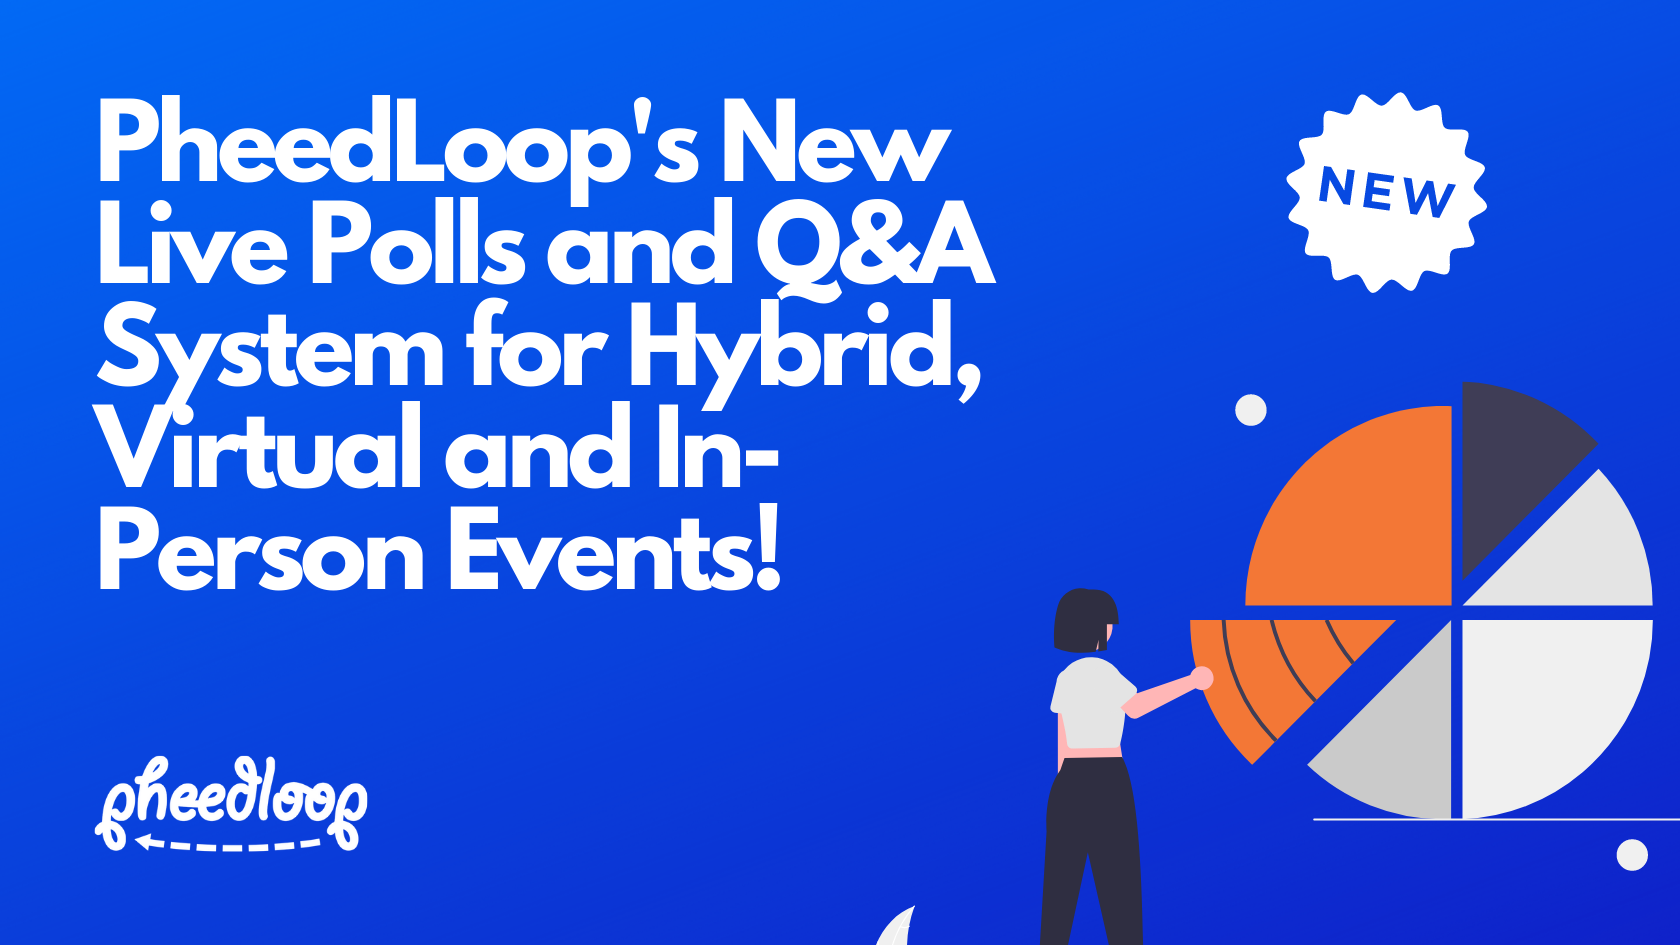 Introducing PheedLoop's New Live Polls and Q&A System for Hybrid, Virtual and In-Person Events!